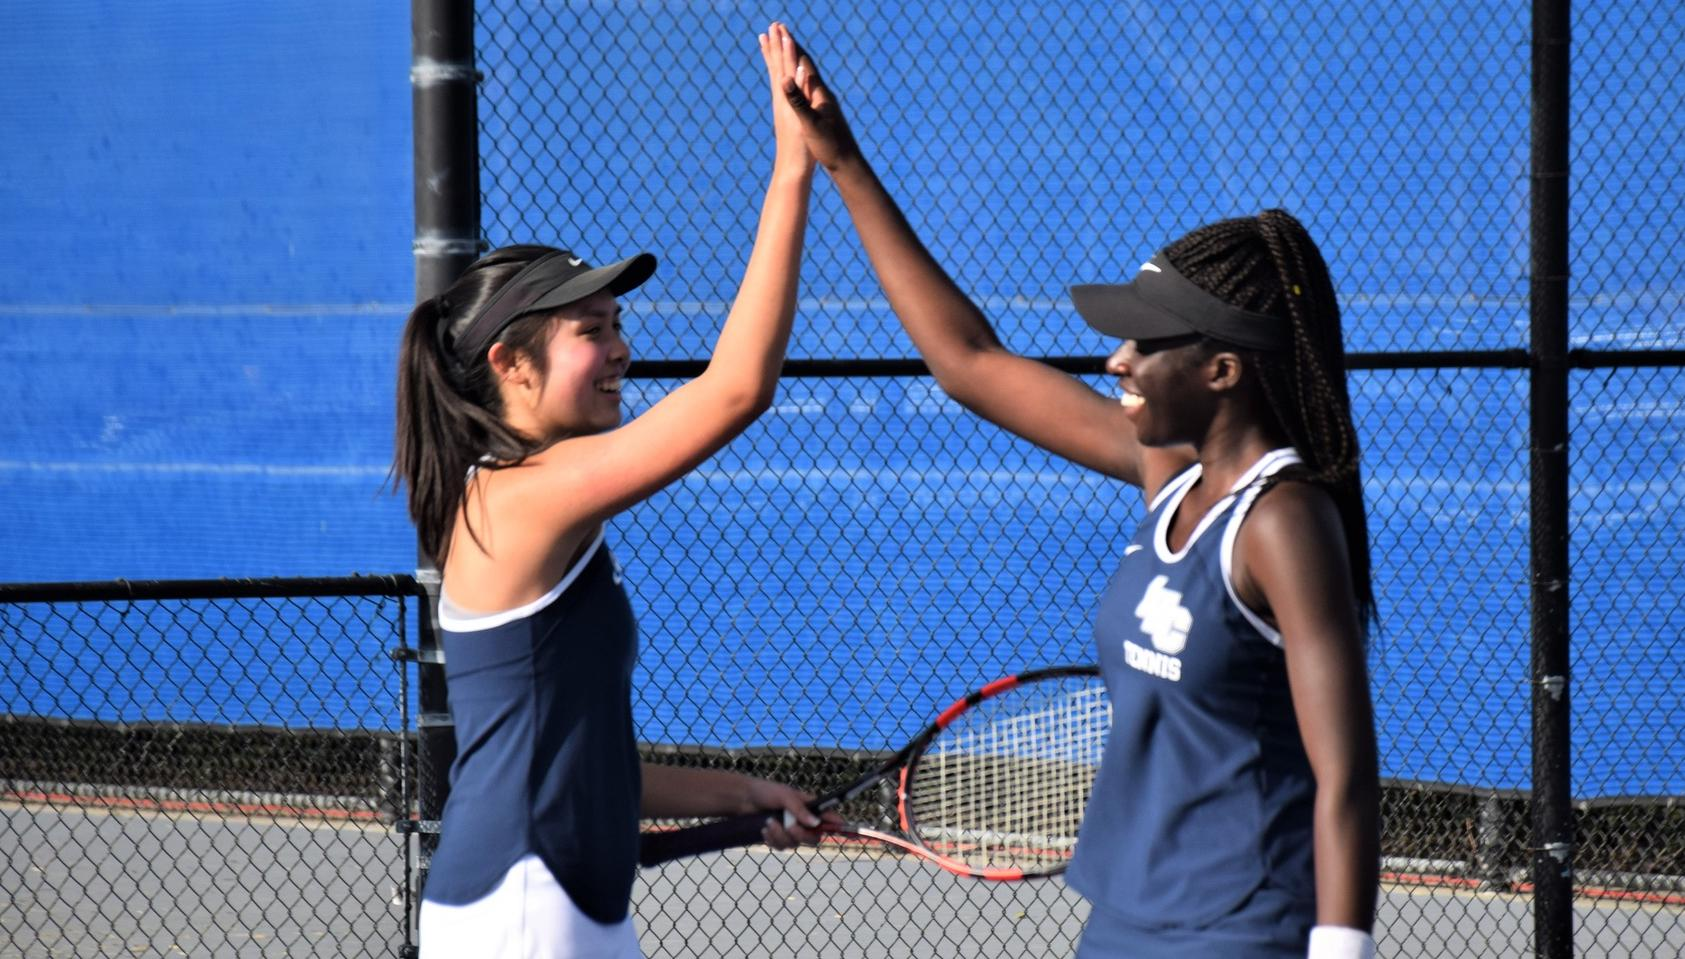 Women's tennis team beats El Camino for first win in 2019